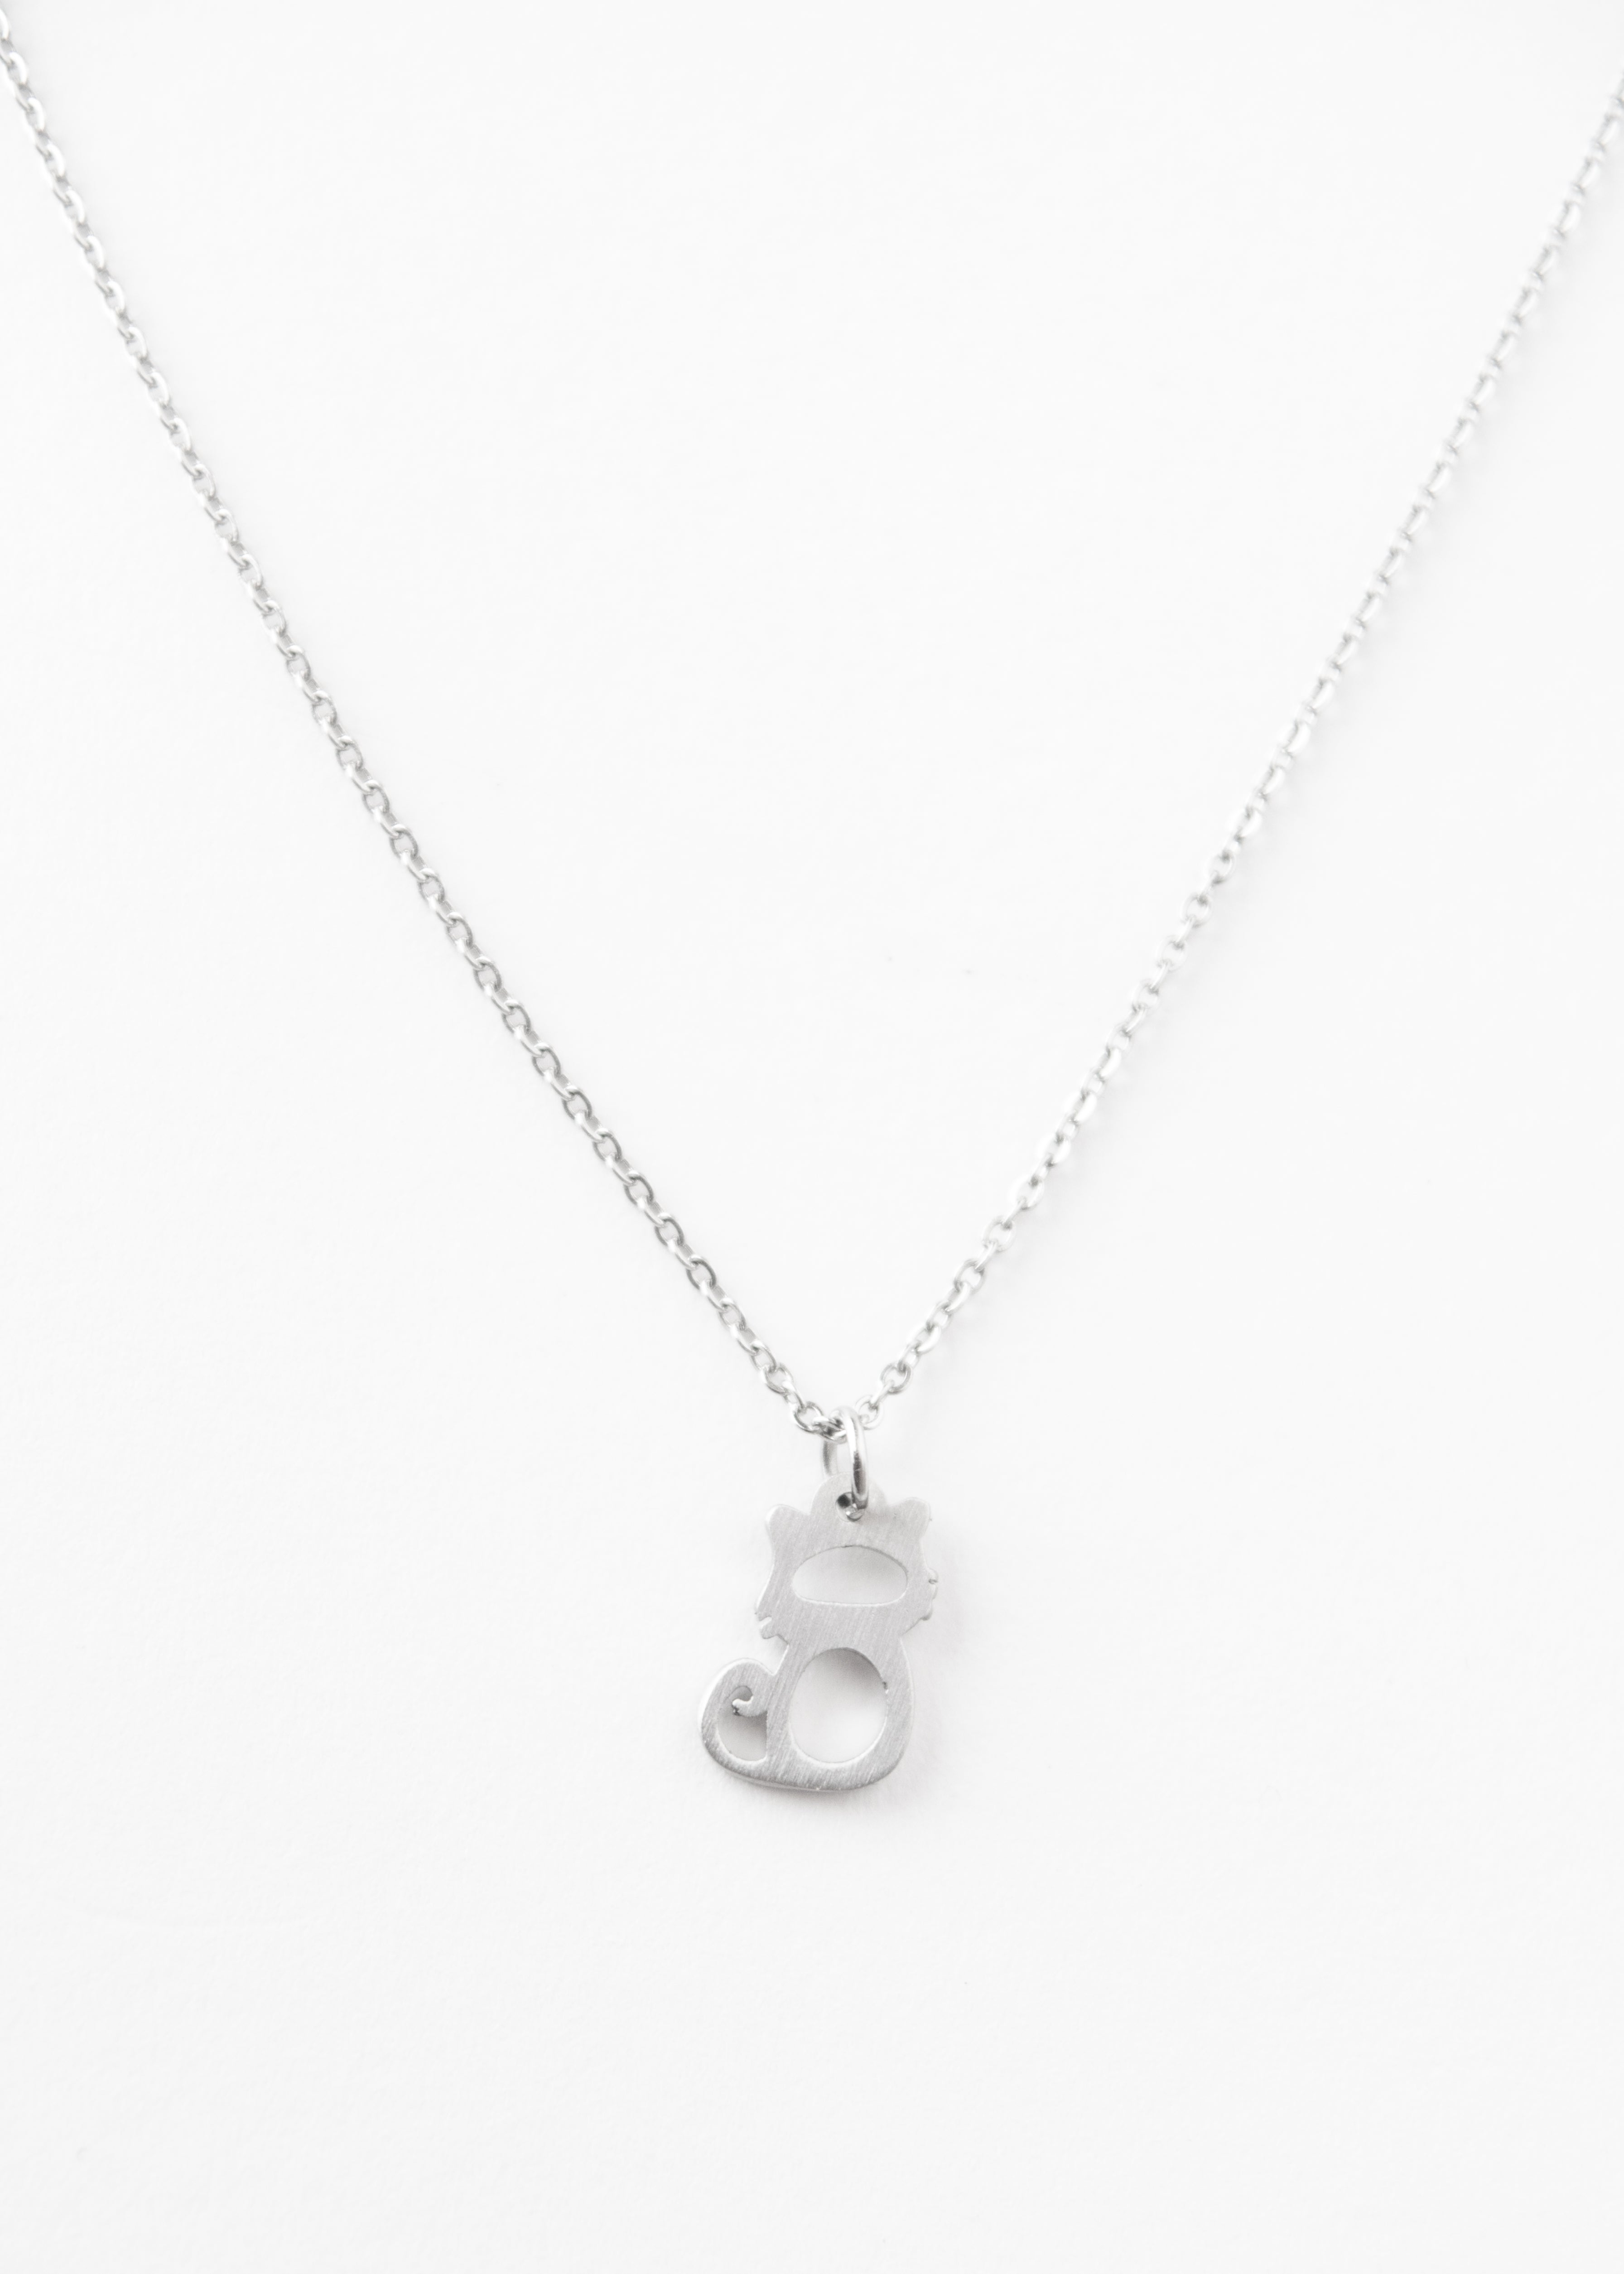 Beck & Boosh Little Cat Necklace Small Necklace With Small Cat Pendant Plated Silver Stainless Steel